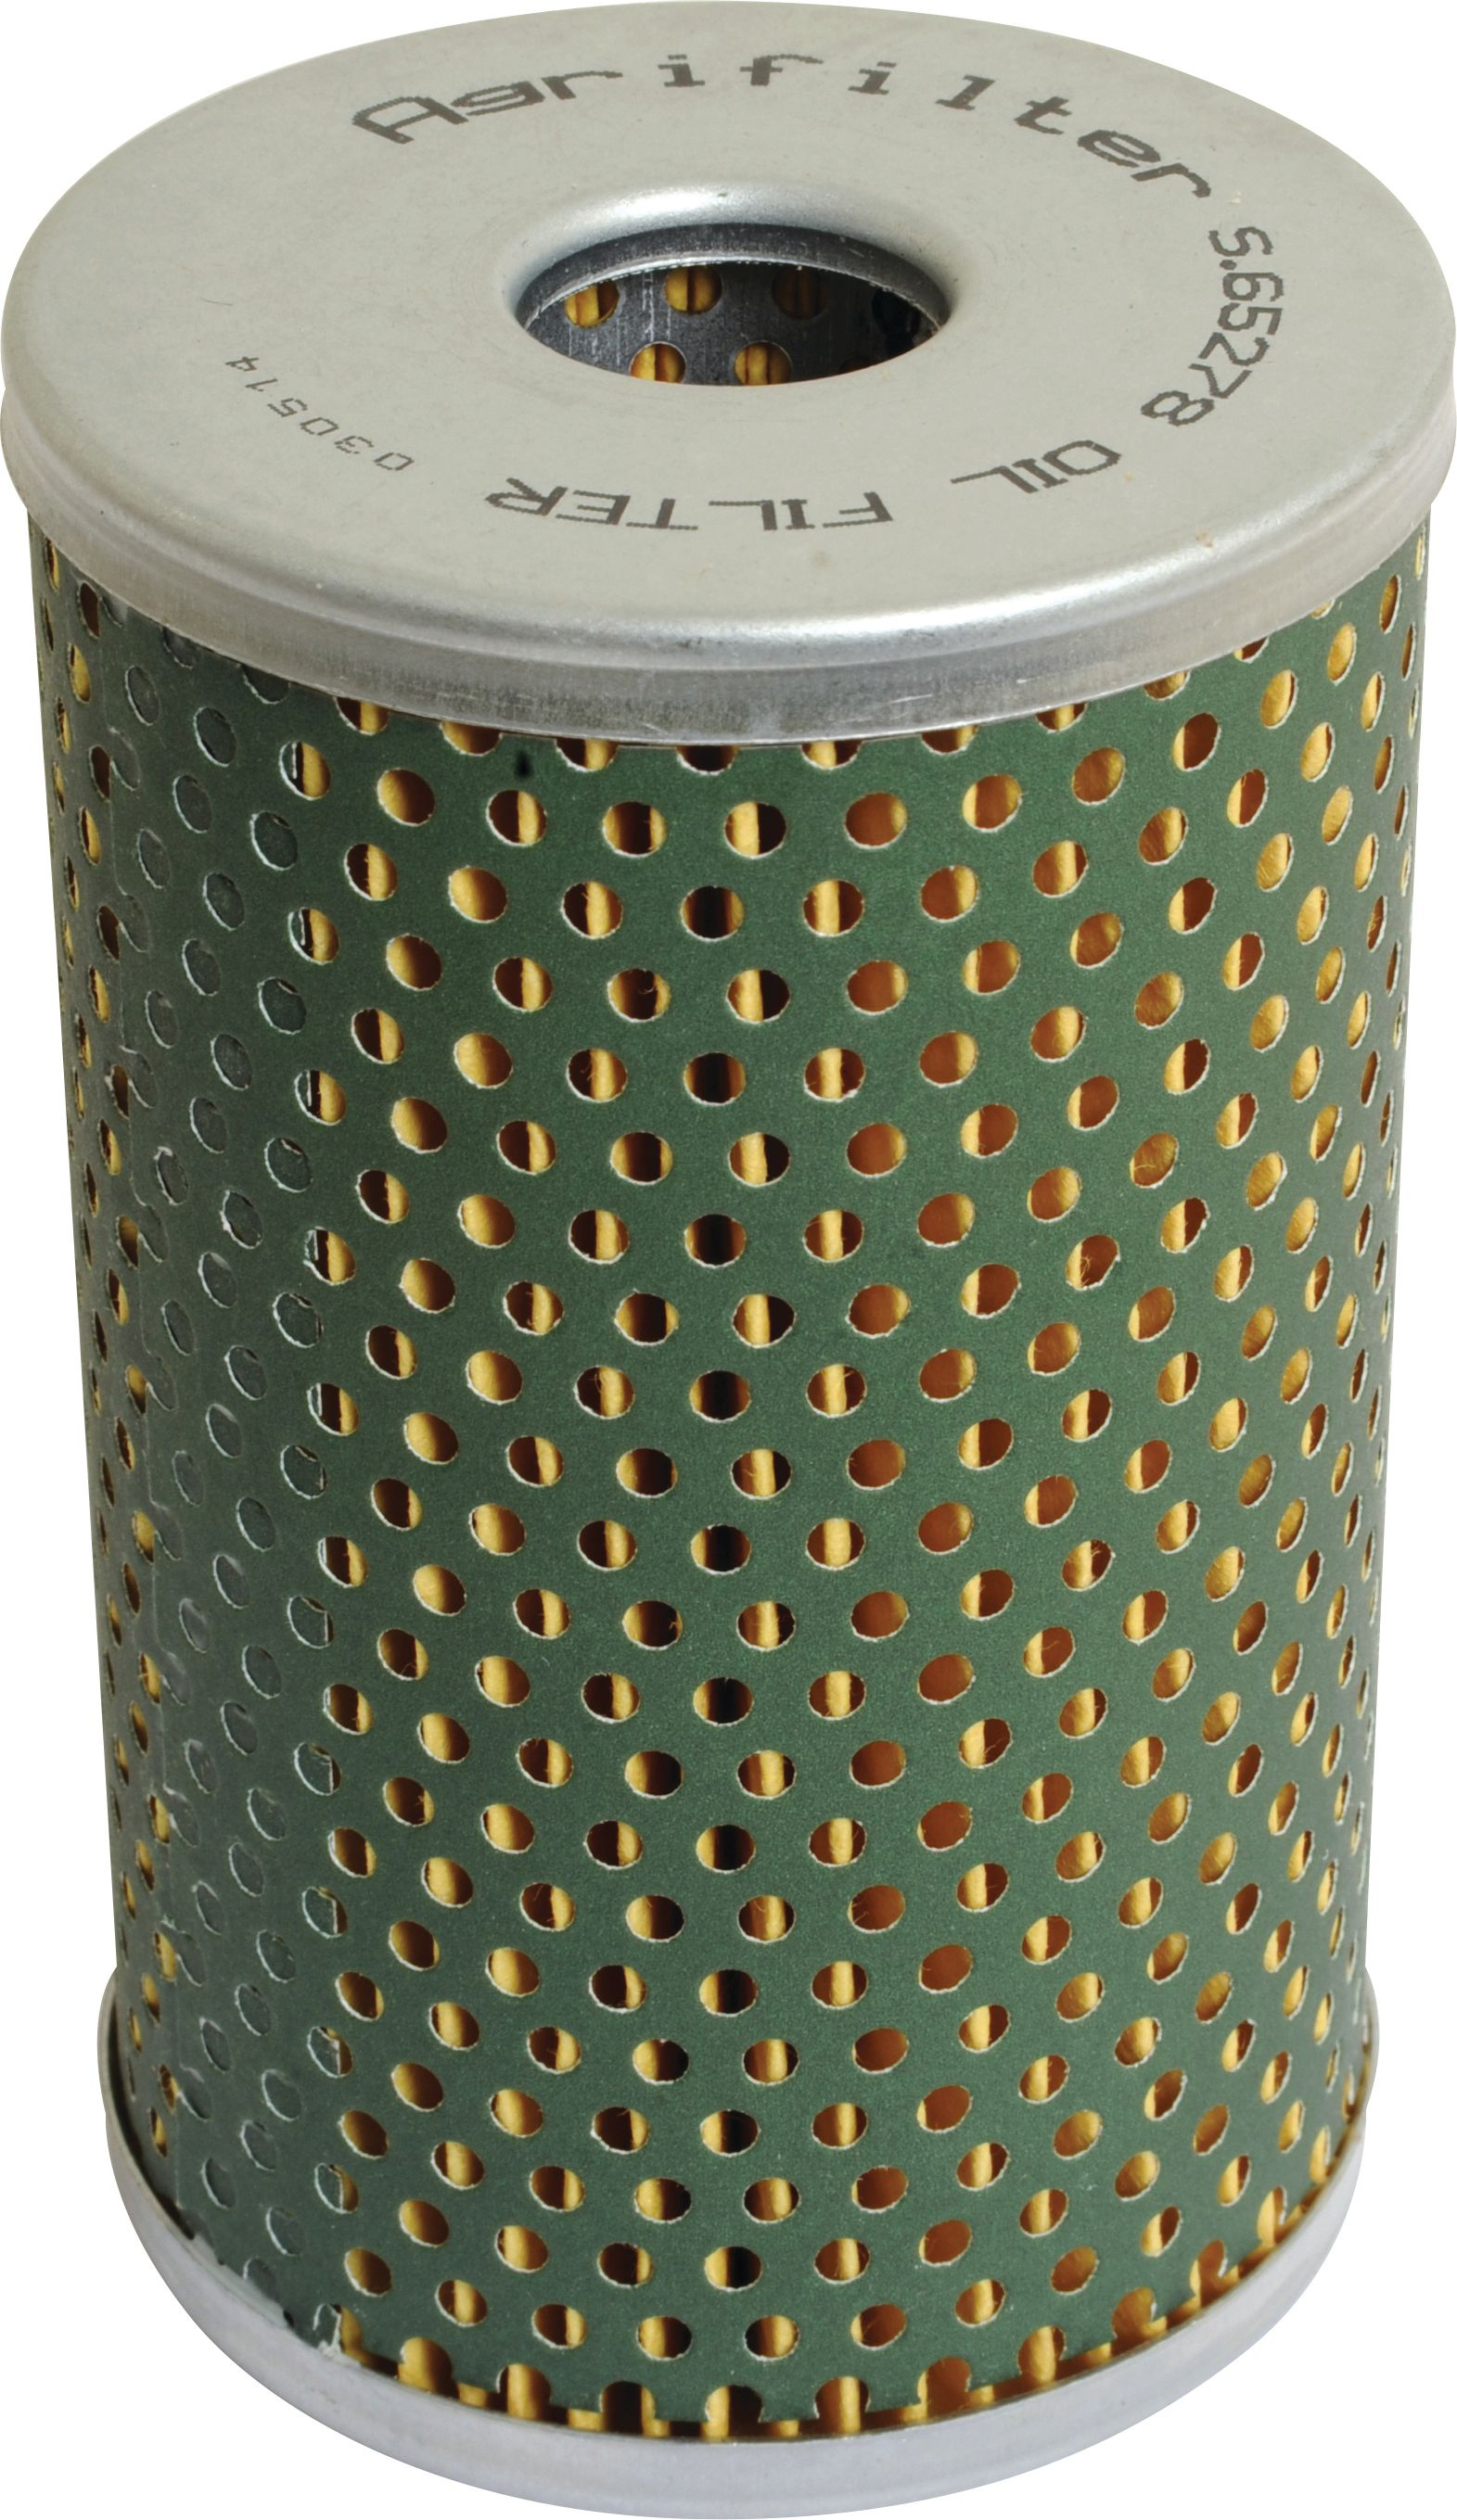 PERKINS OIL FILTER 65278